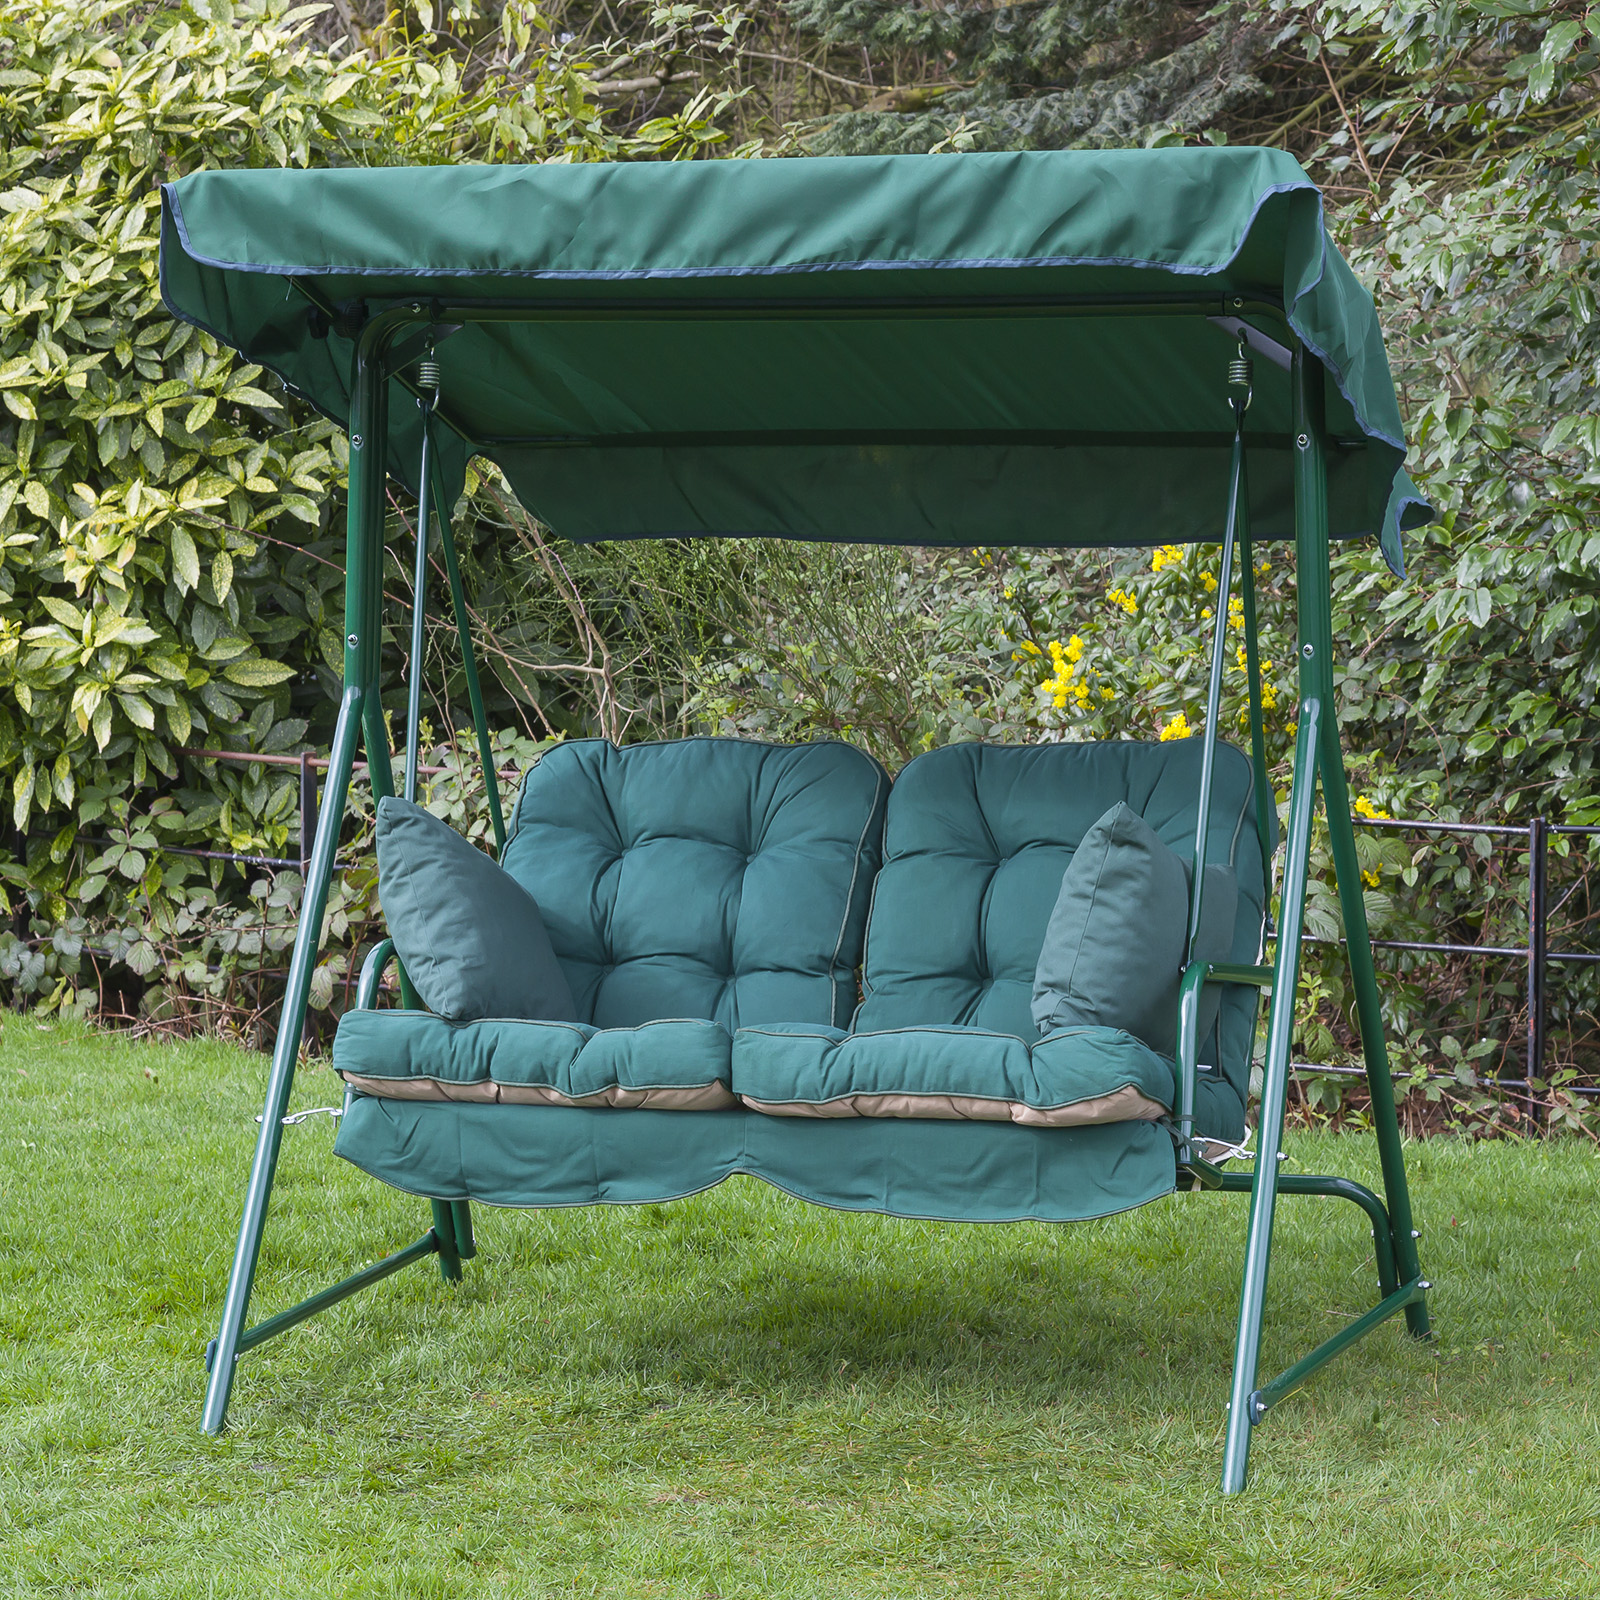 Where To Buy Family 3 Seat Swing Replacement Cushions